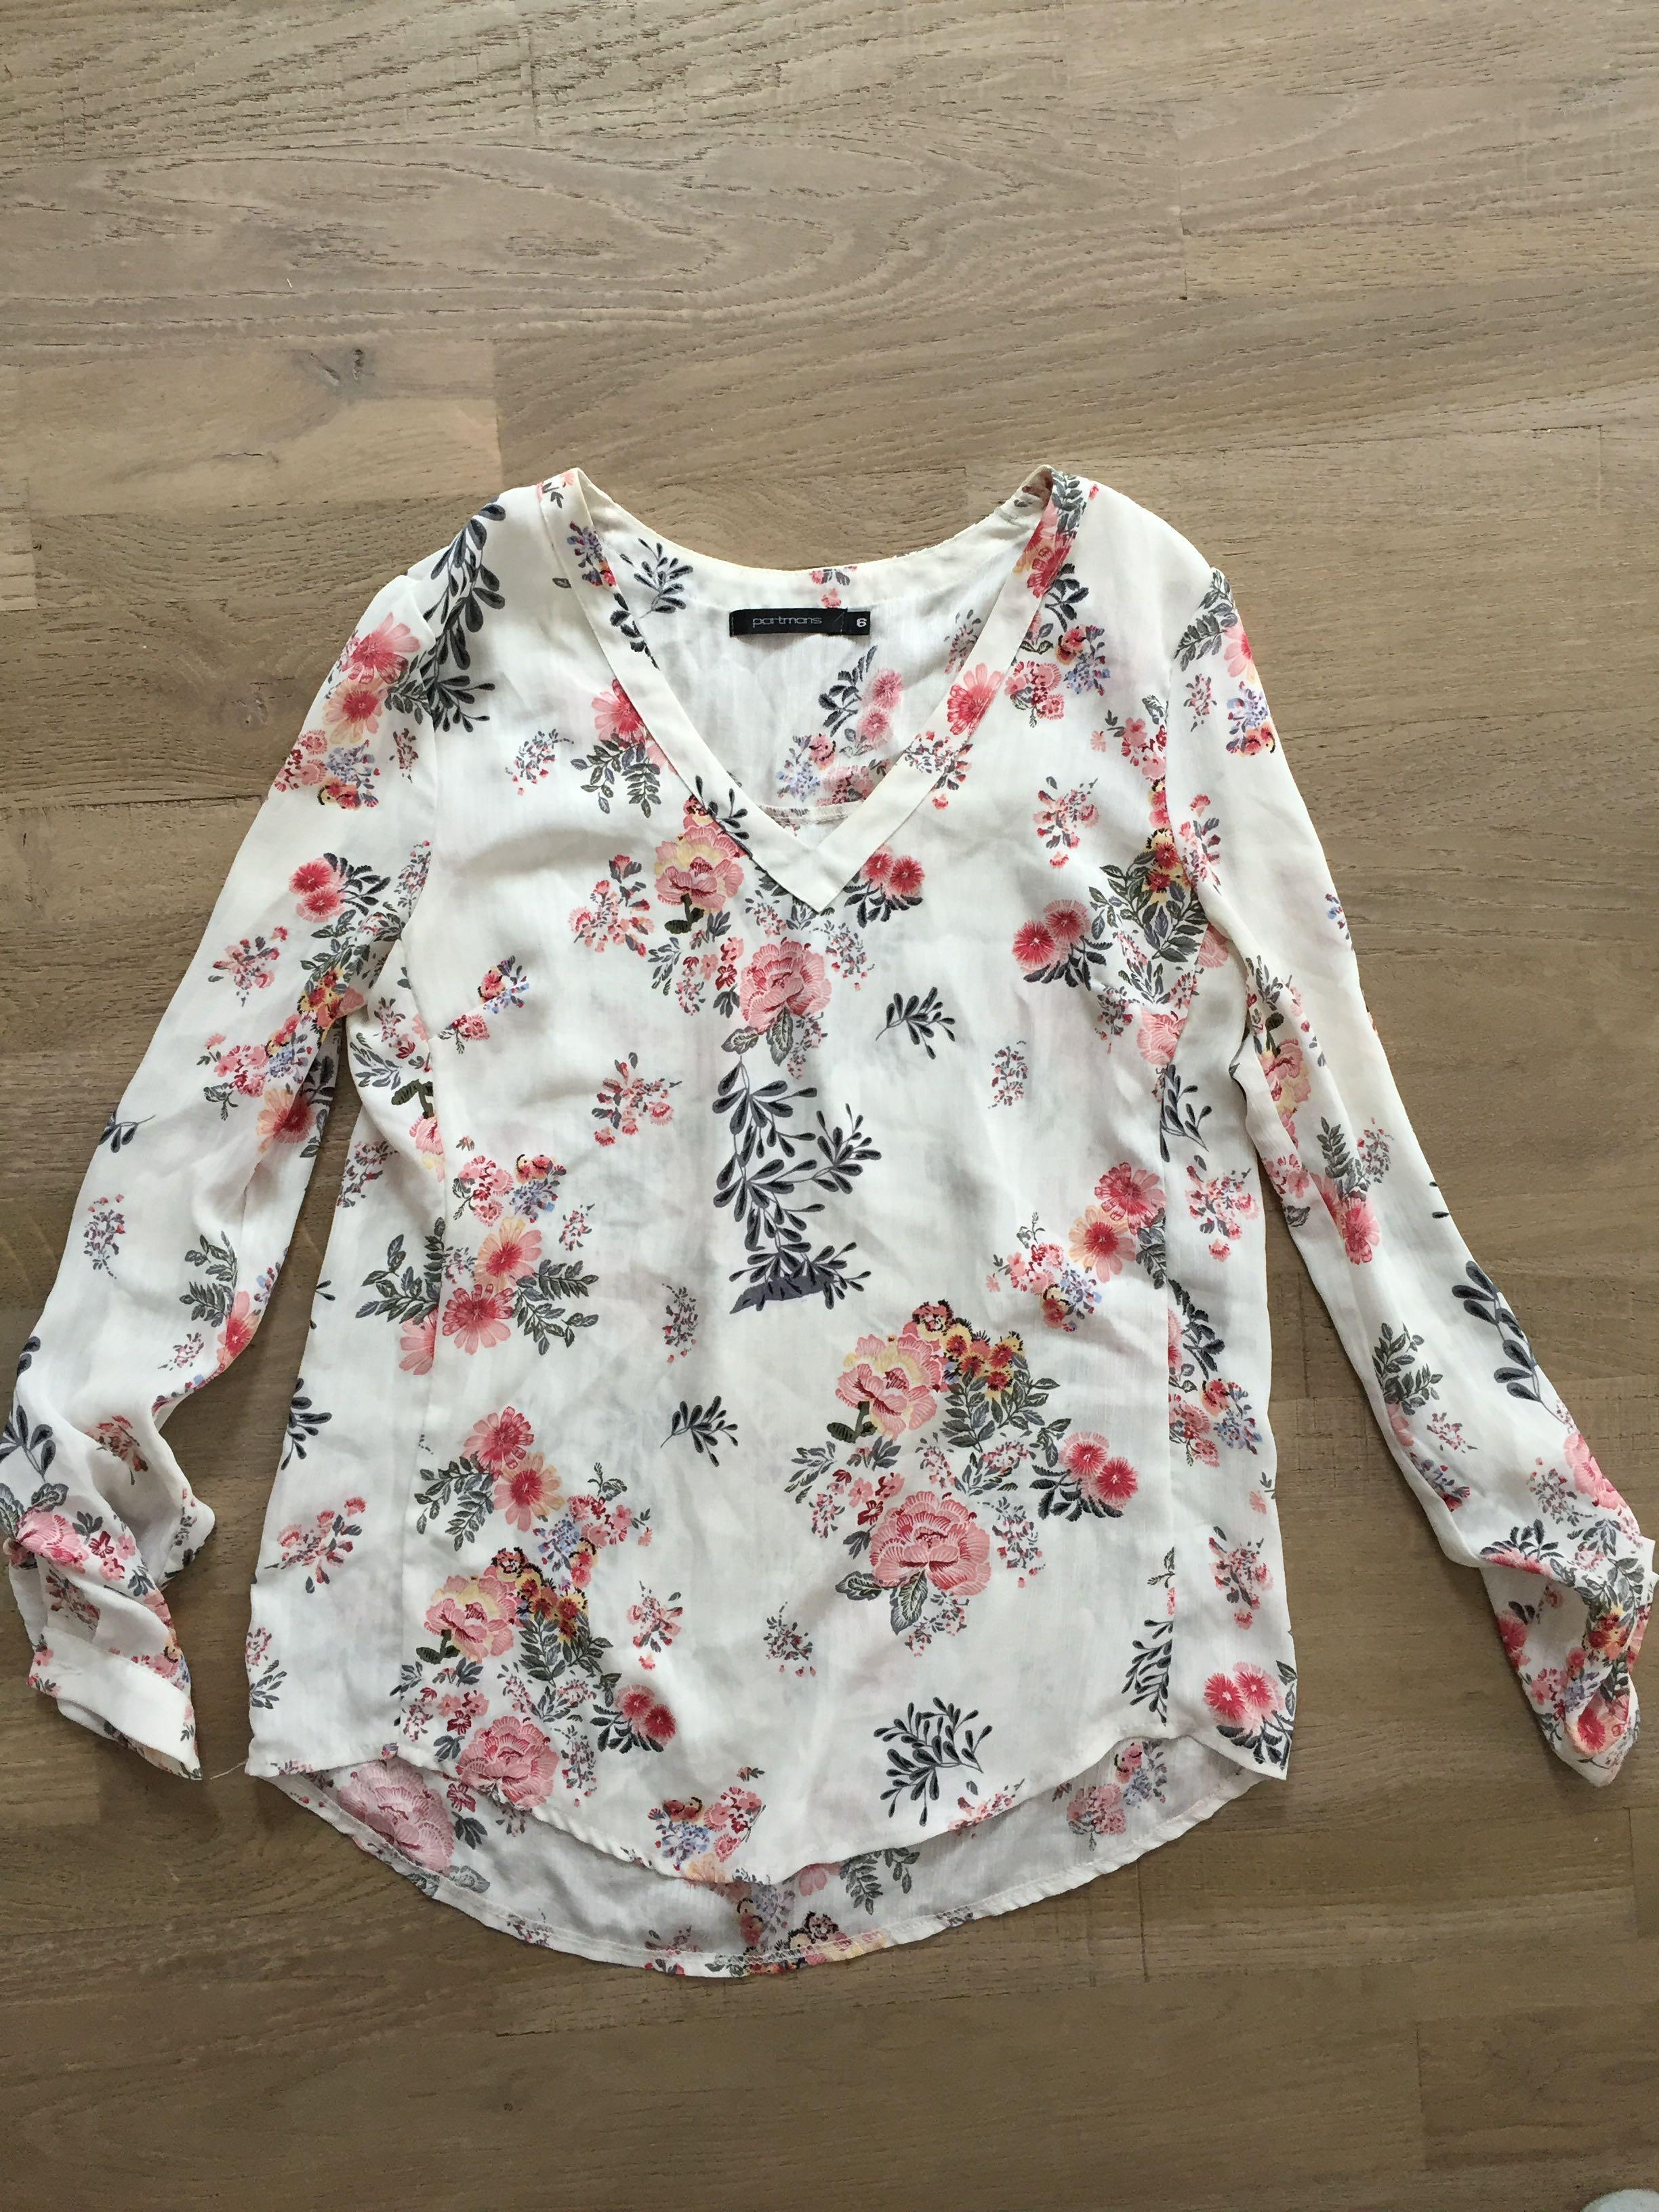 Portman's size 6 floral top with adjustable sleeves